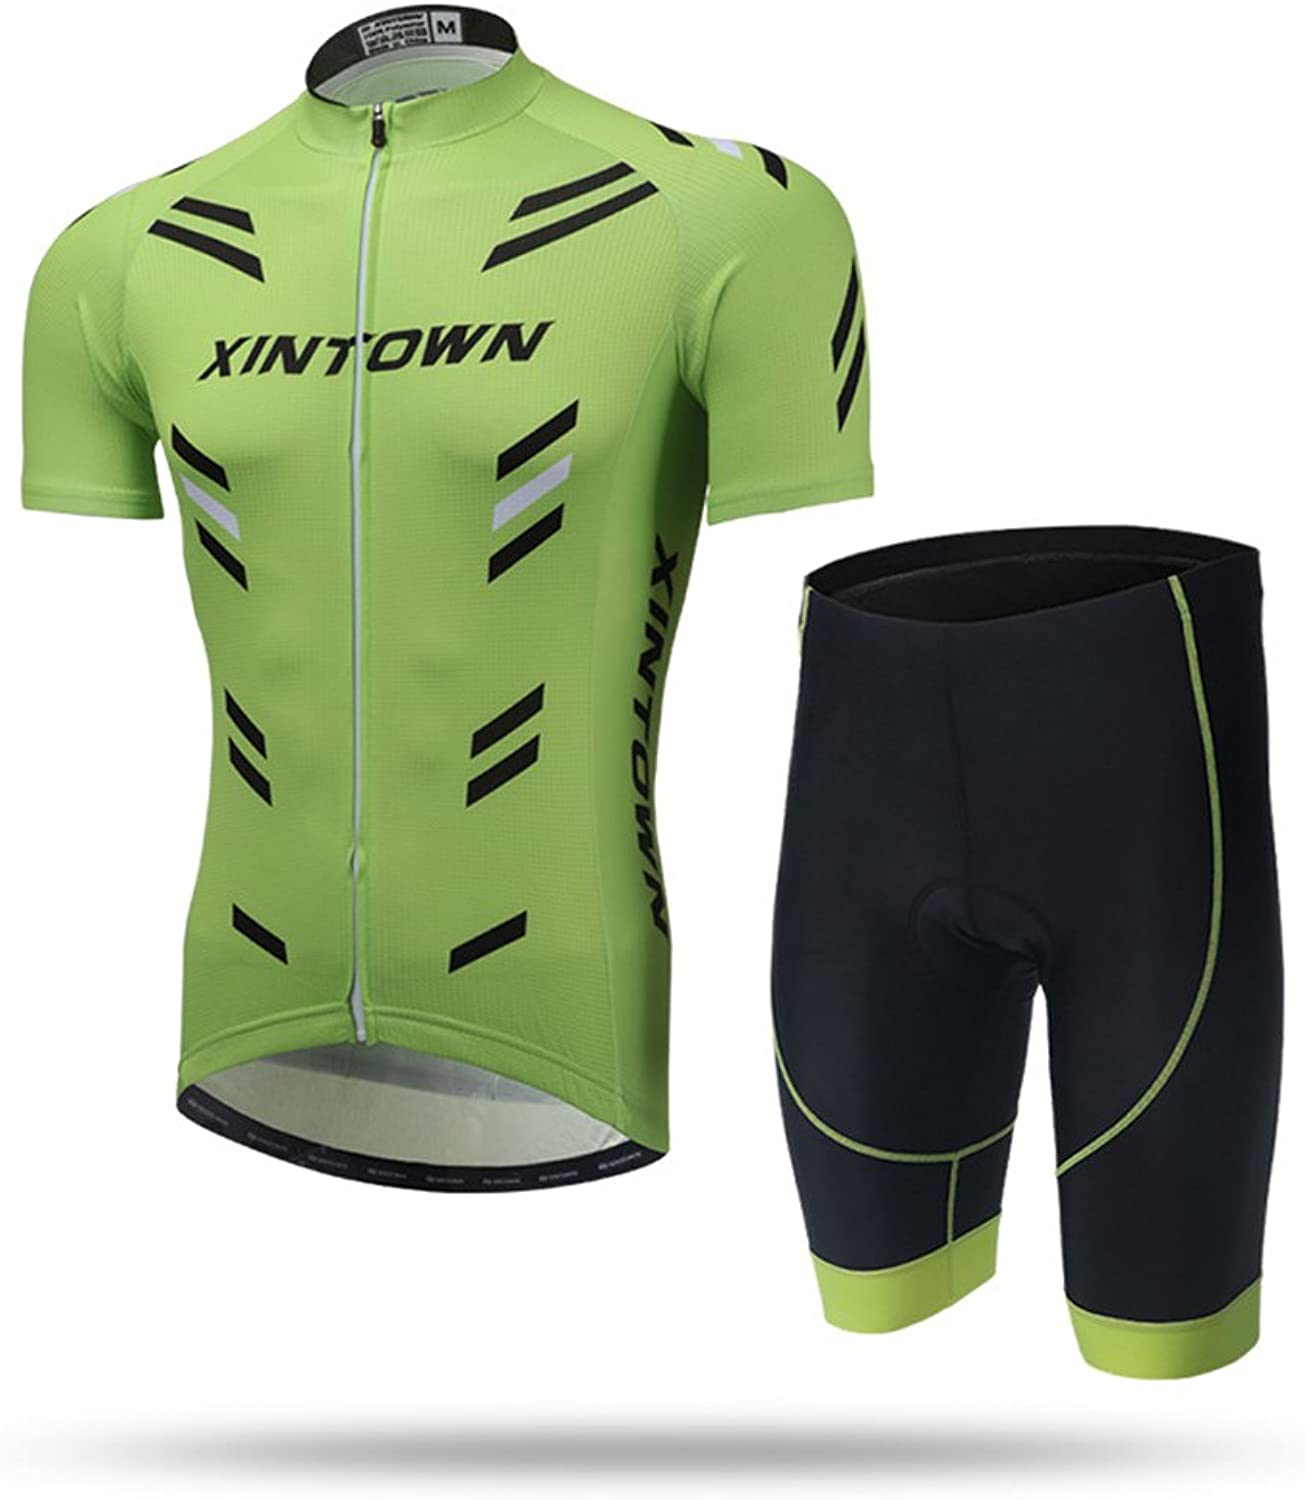 Pinjeer 2018 Newest Summer Named Vibrant Dresses Cycling Clothing 100% Polyester Outdoors Sports Jersey Prime Short Sleeve Pants Sets Men Racing Bike